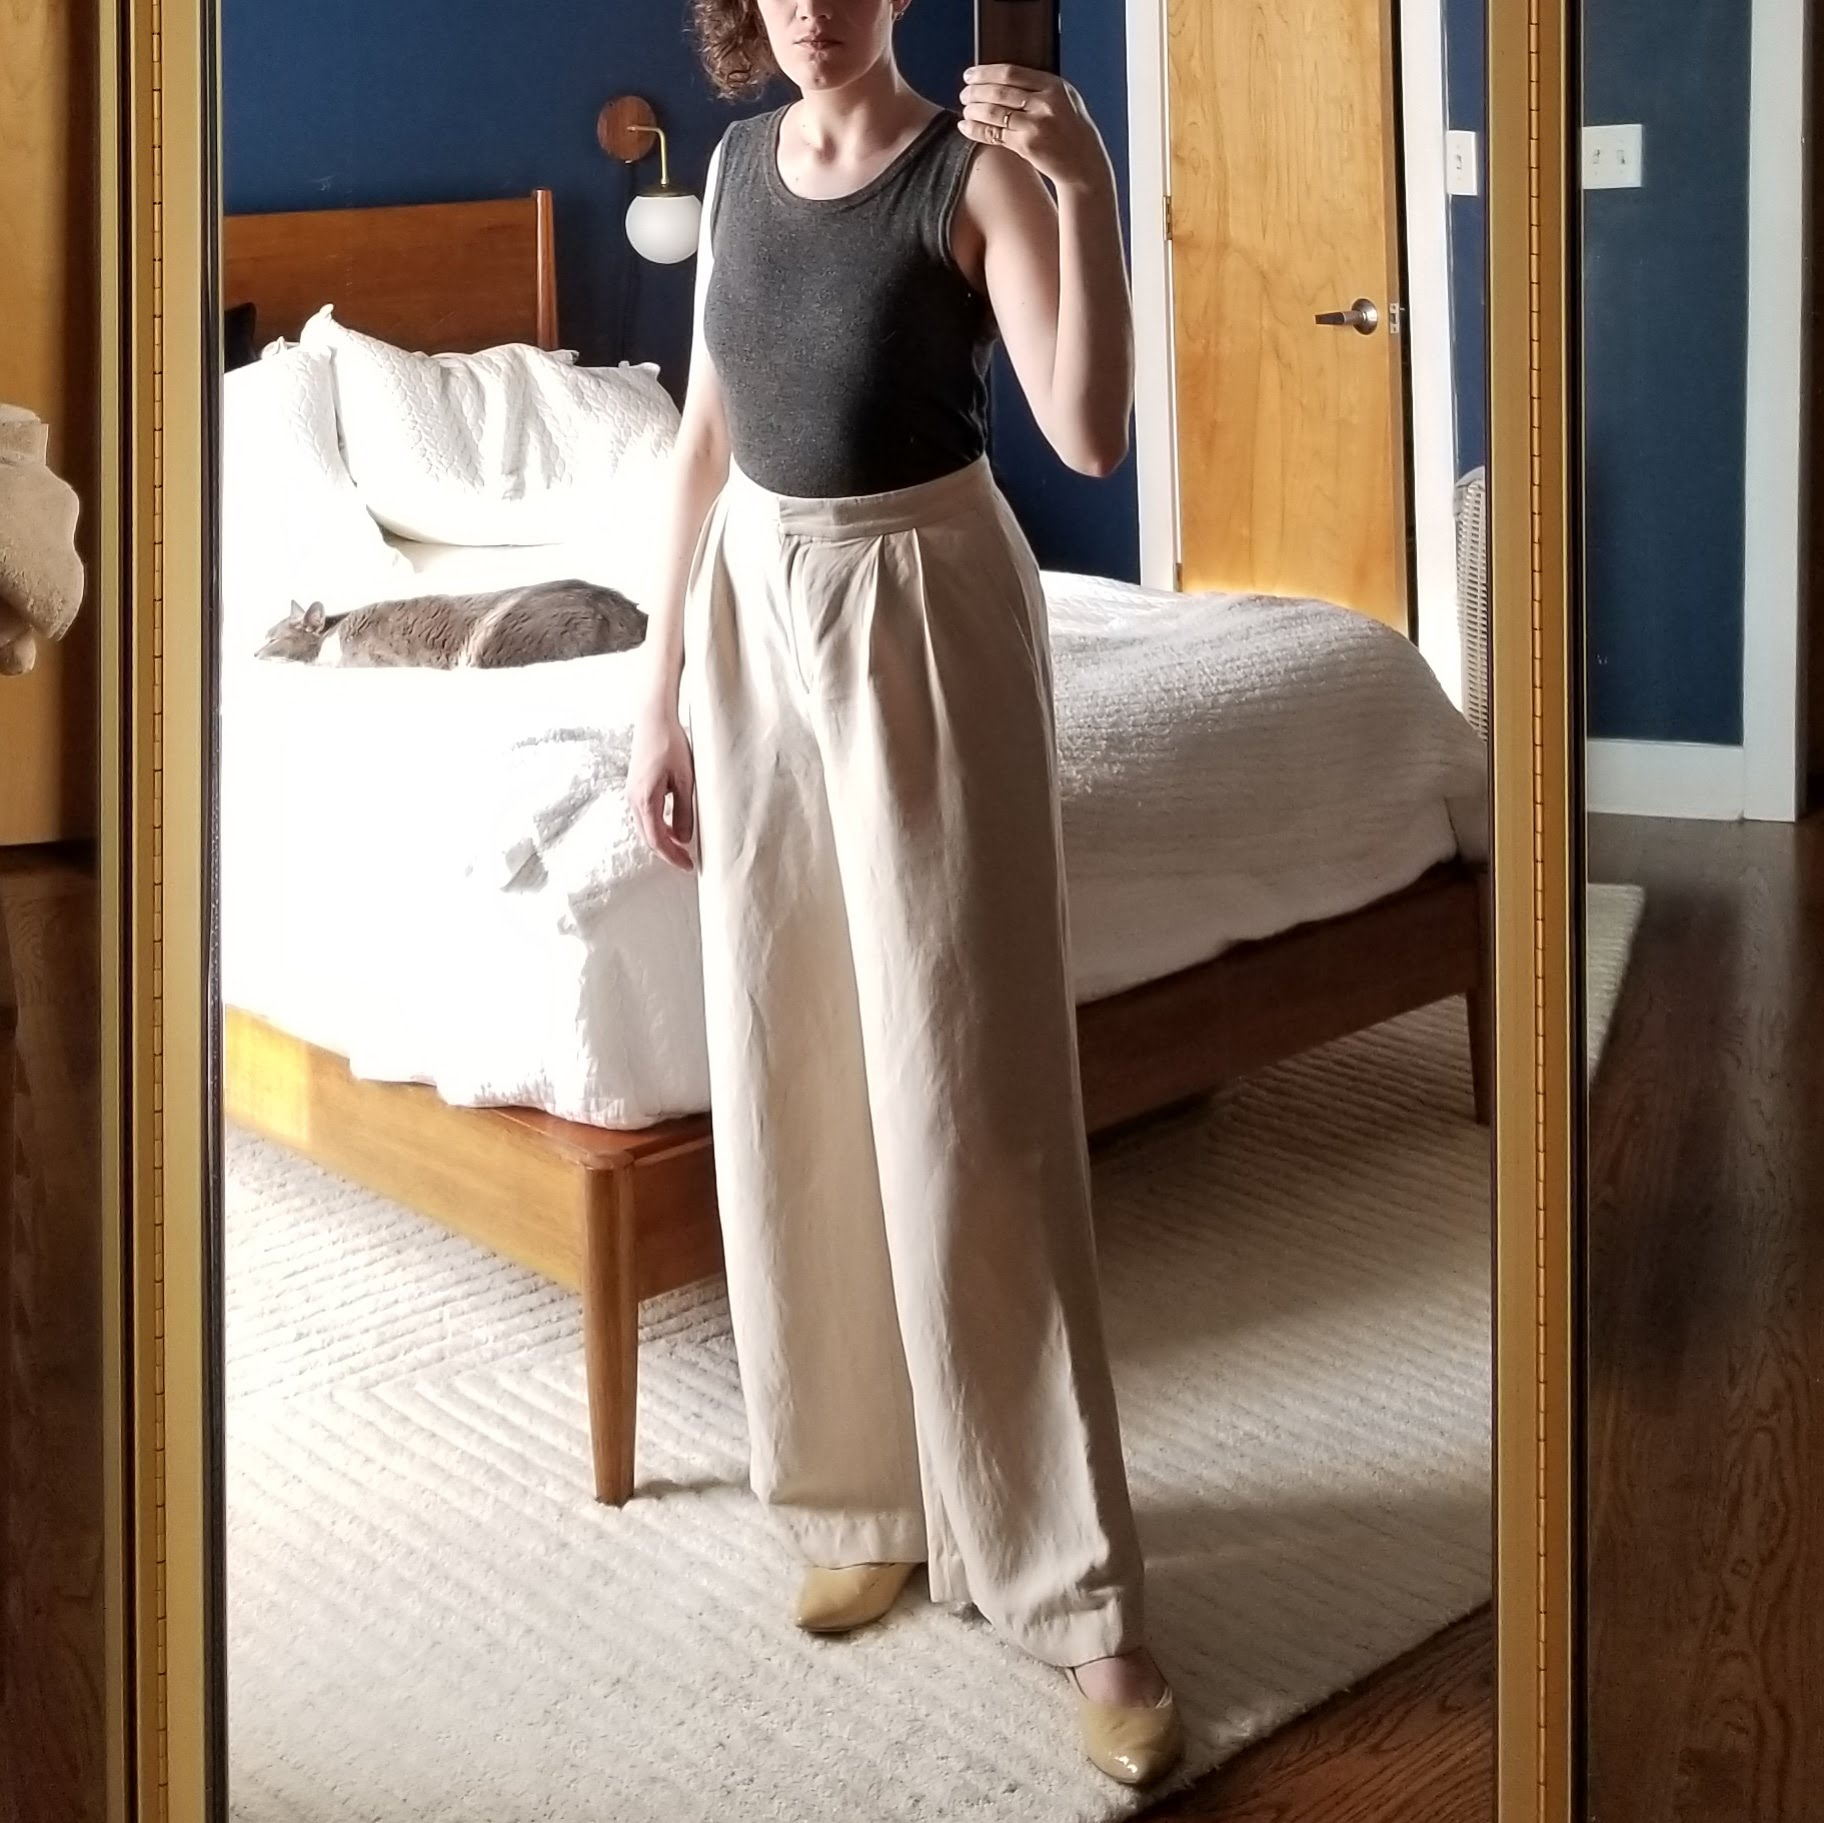 Thursday - May 10, 2018No working from home today, unfortunately. Was in a meeting with some board members though so I thought I'd do my version of dressing up. These linen blend trousers always do the job.